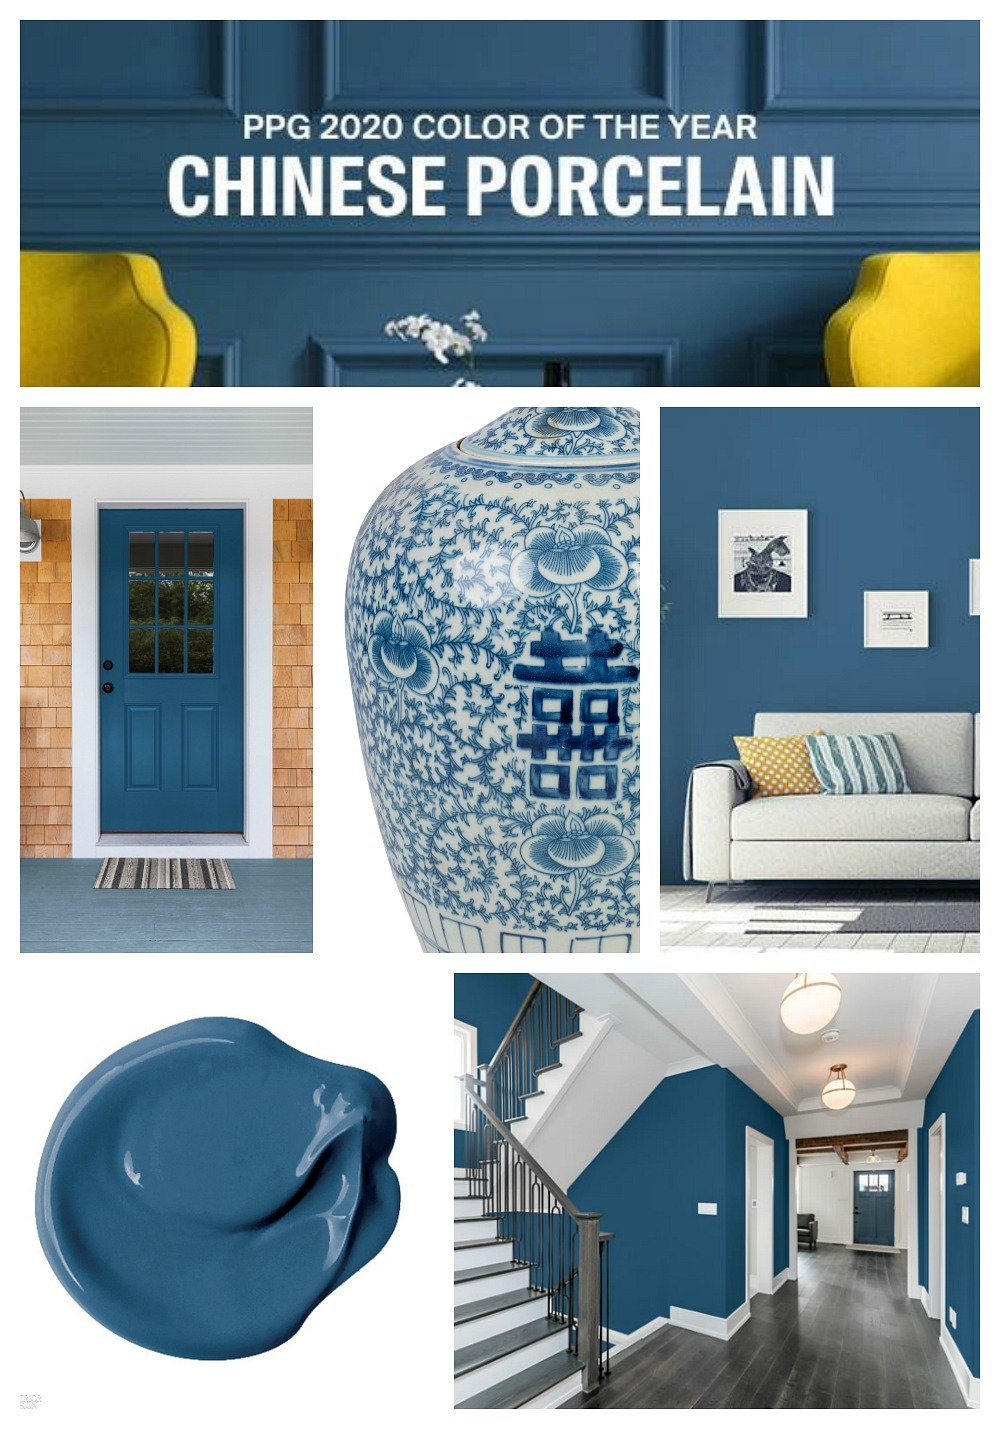 PPG 2020 Color of the Year Chinese Porcelain